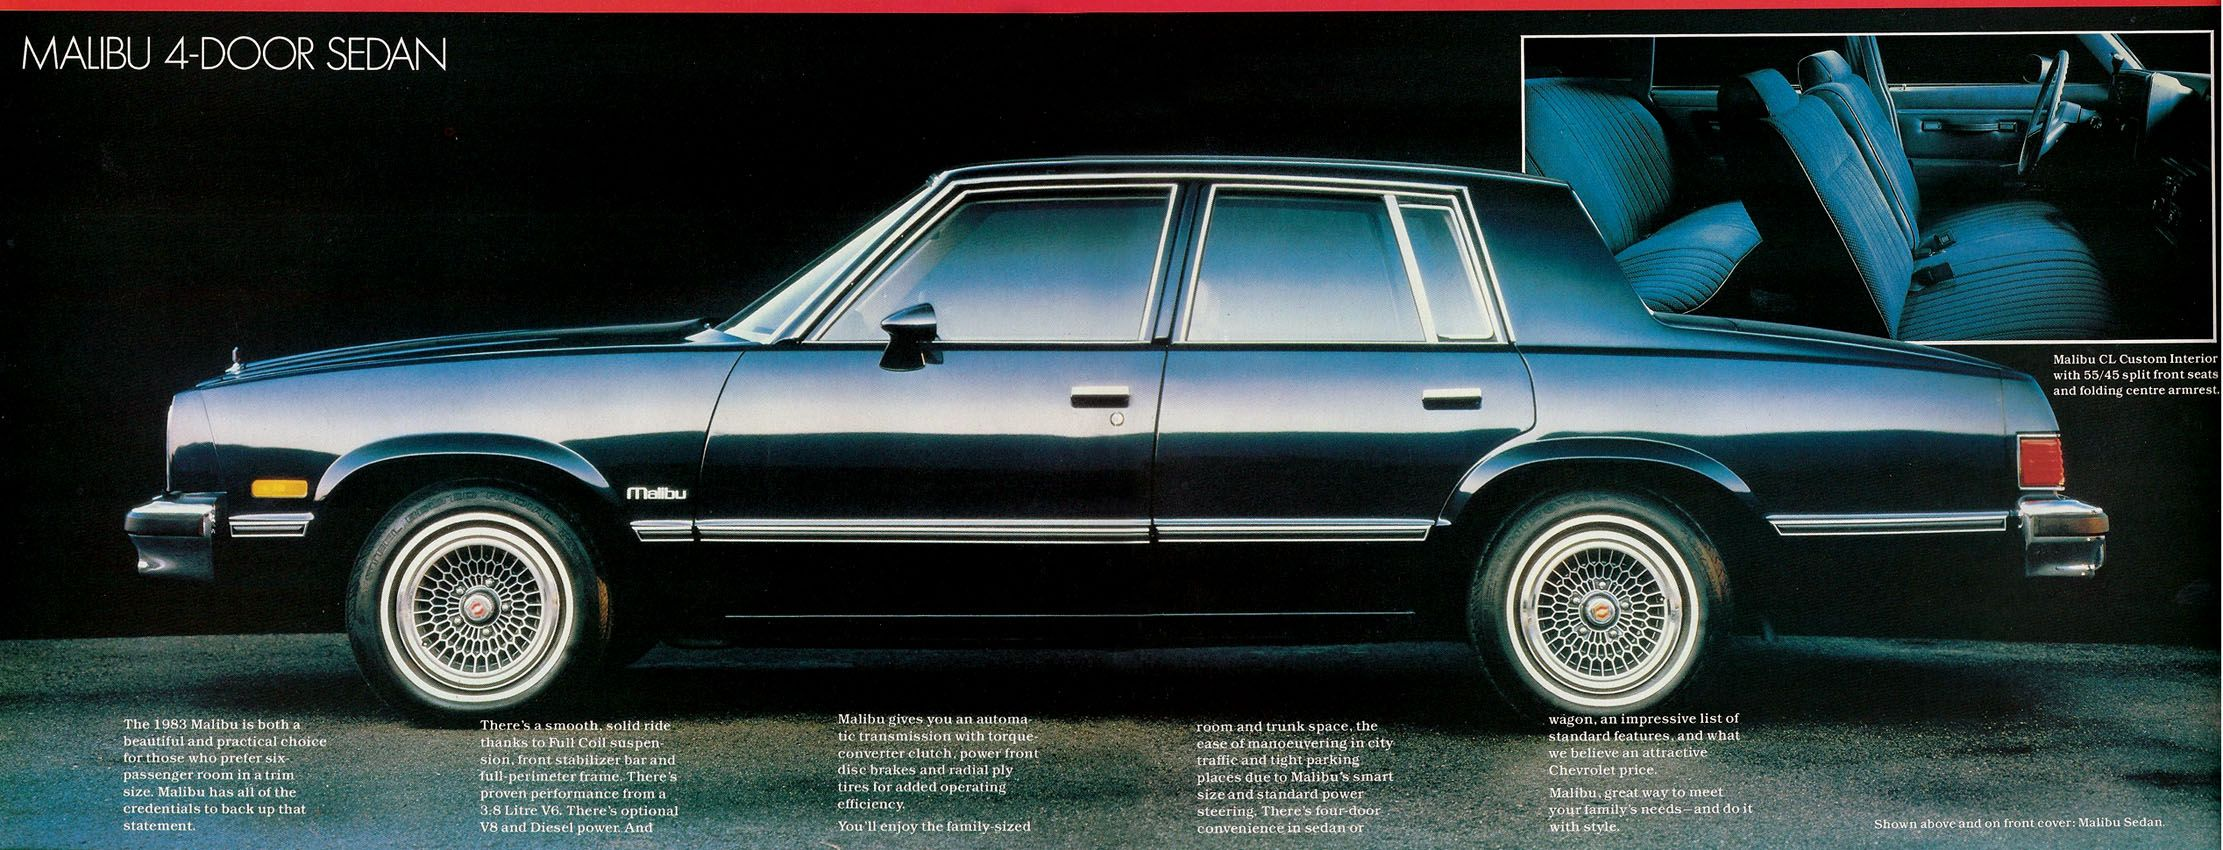 1983 chevrolet malibu cdn 02 03 autos pinterest chevrolet malibu chevrolet and cars. Black Bedroom Furniture Sets. Home Design Ideas